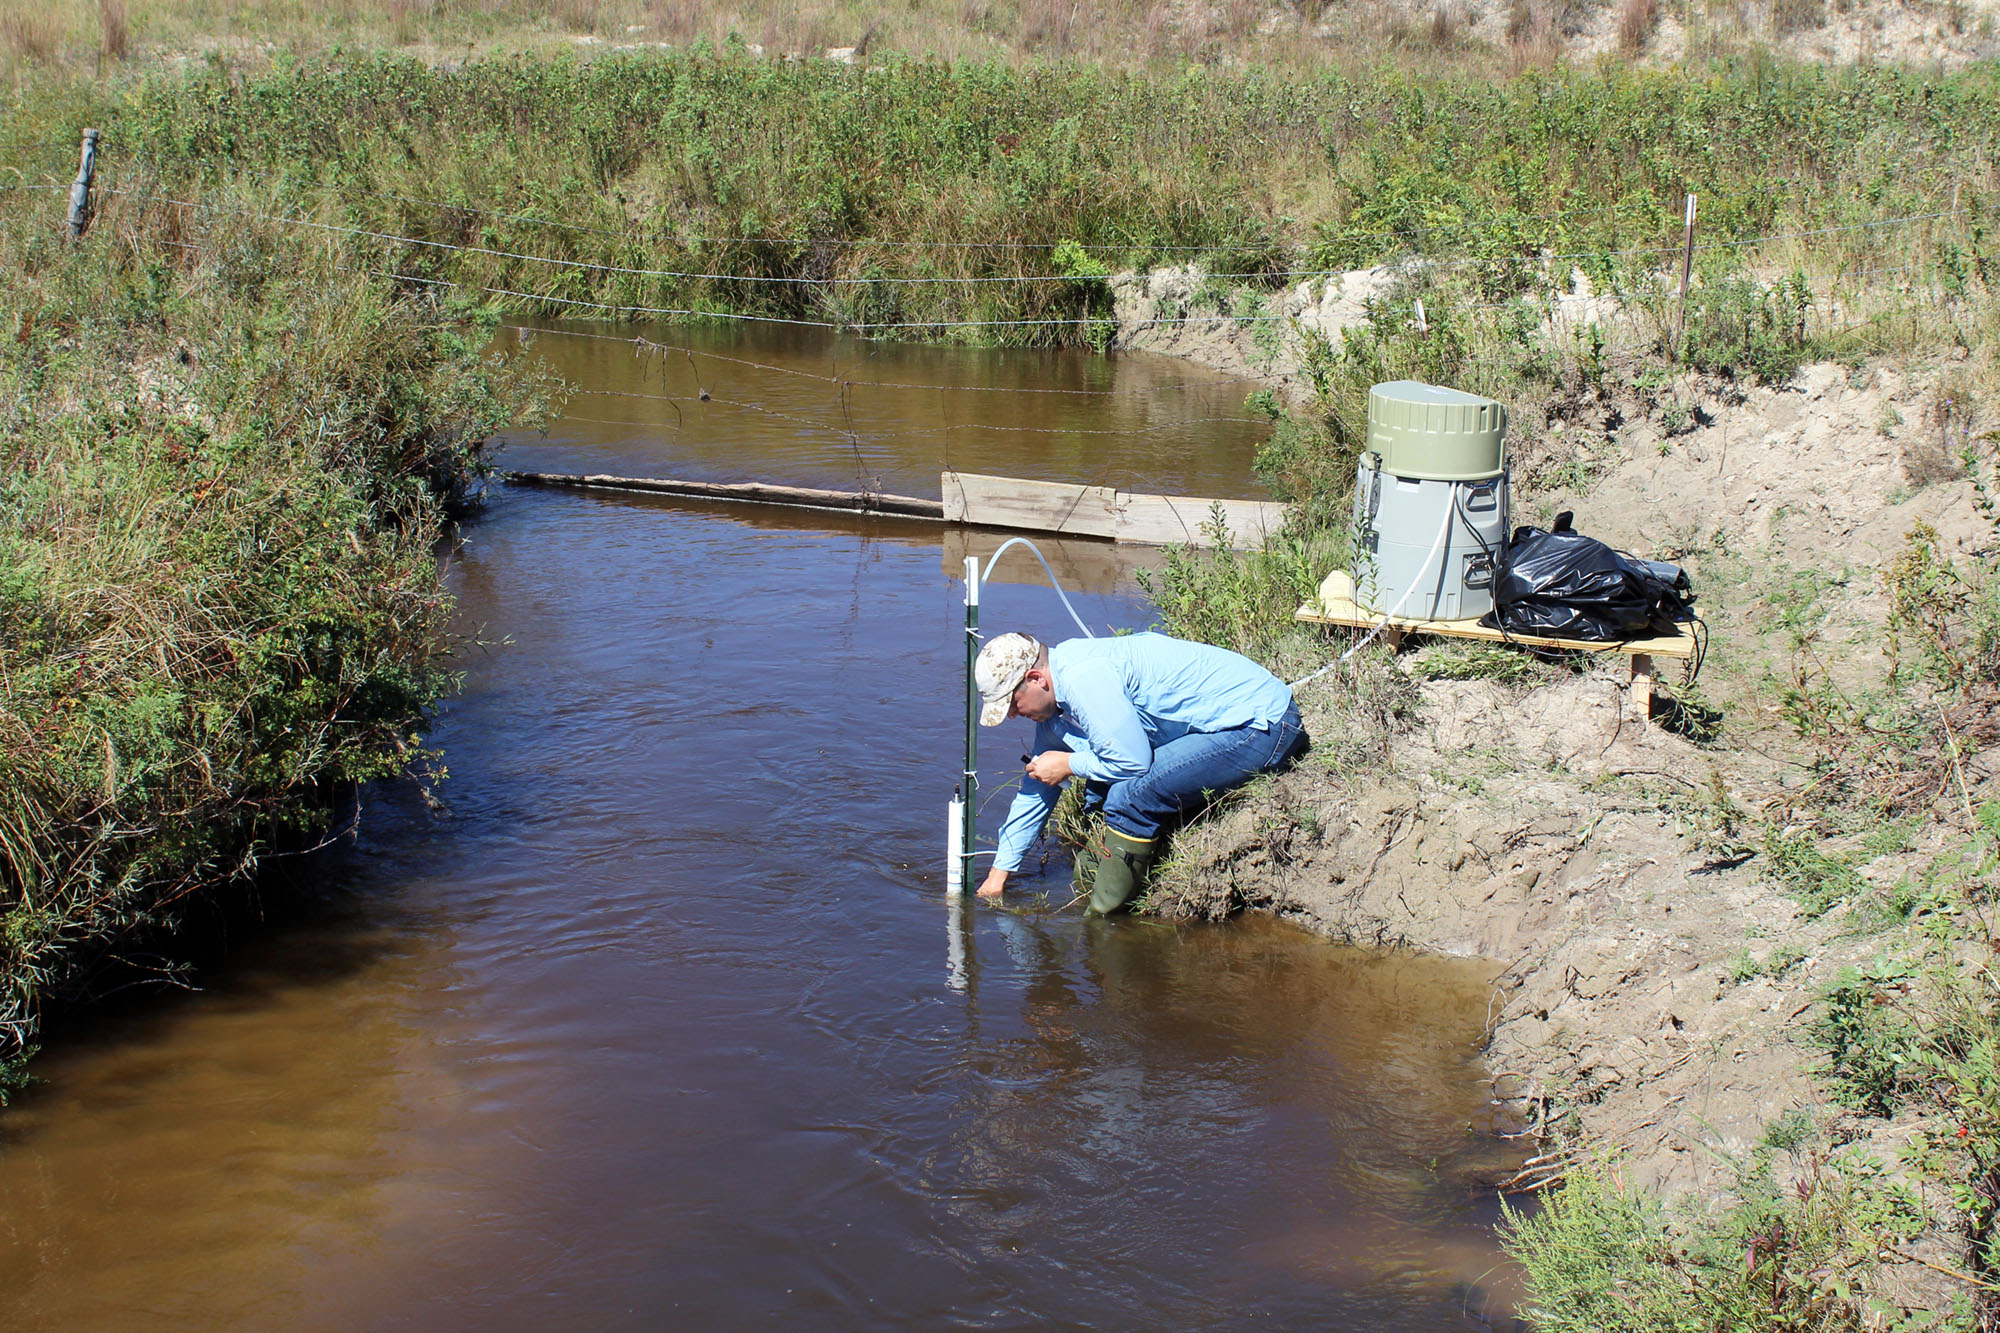 Troy Gilmore sets up to take groundwater samples from the Loup River in the Sandhills of Nebraska in September 2018. By sampling groundwater and determining its age, they hope to determine whether predictions for groundwater discharge rates and contaminat